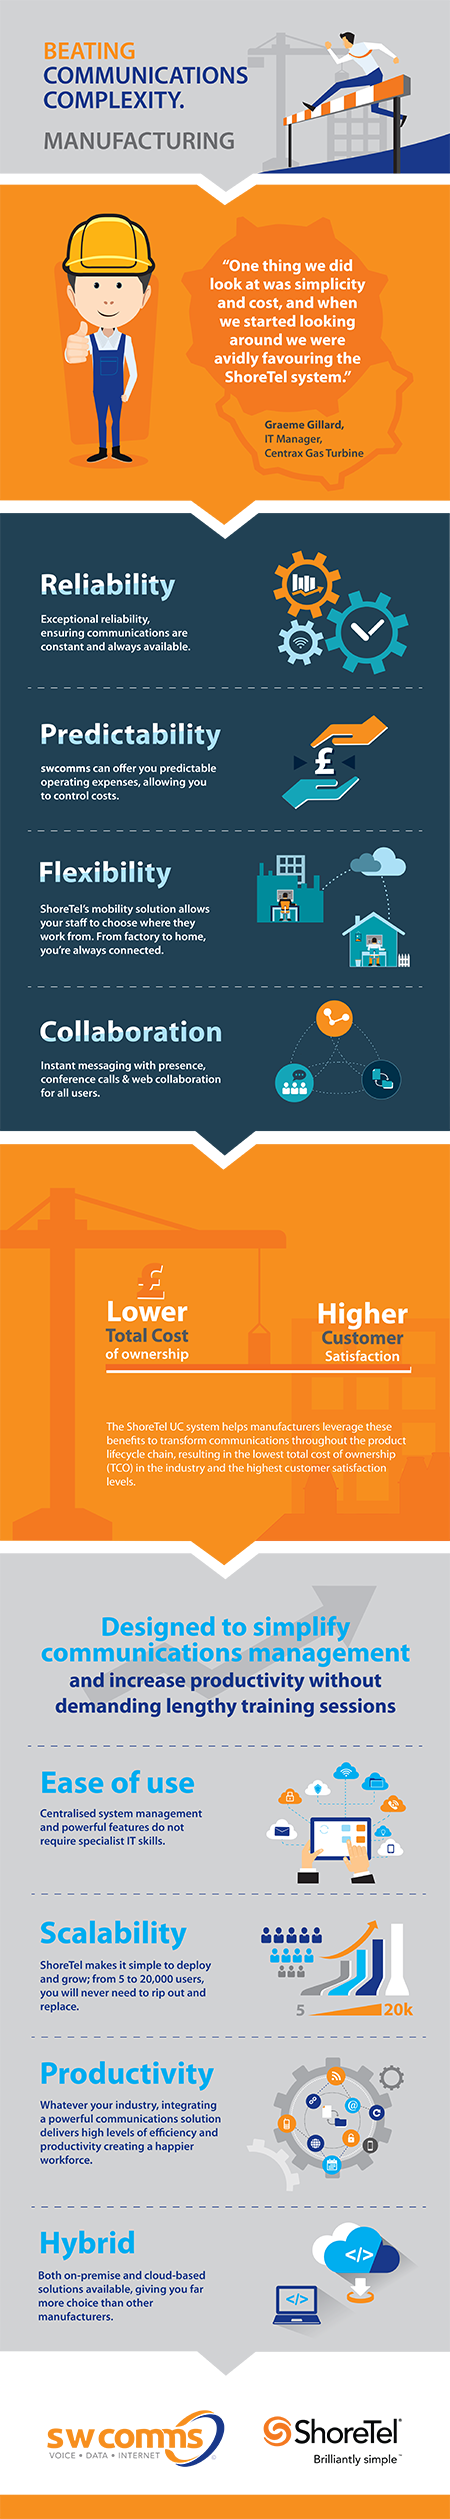 Infographic showing complexity in communications within the manufacturing industry